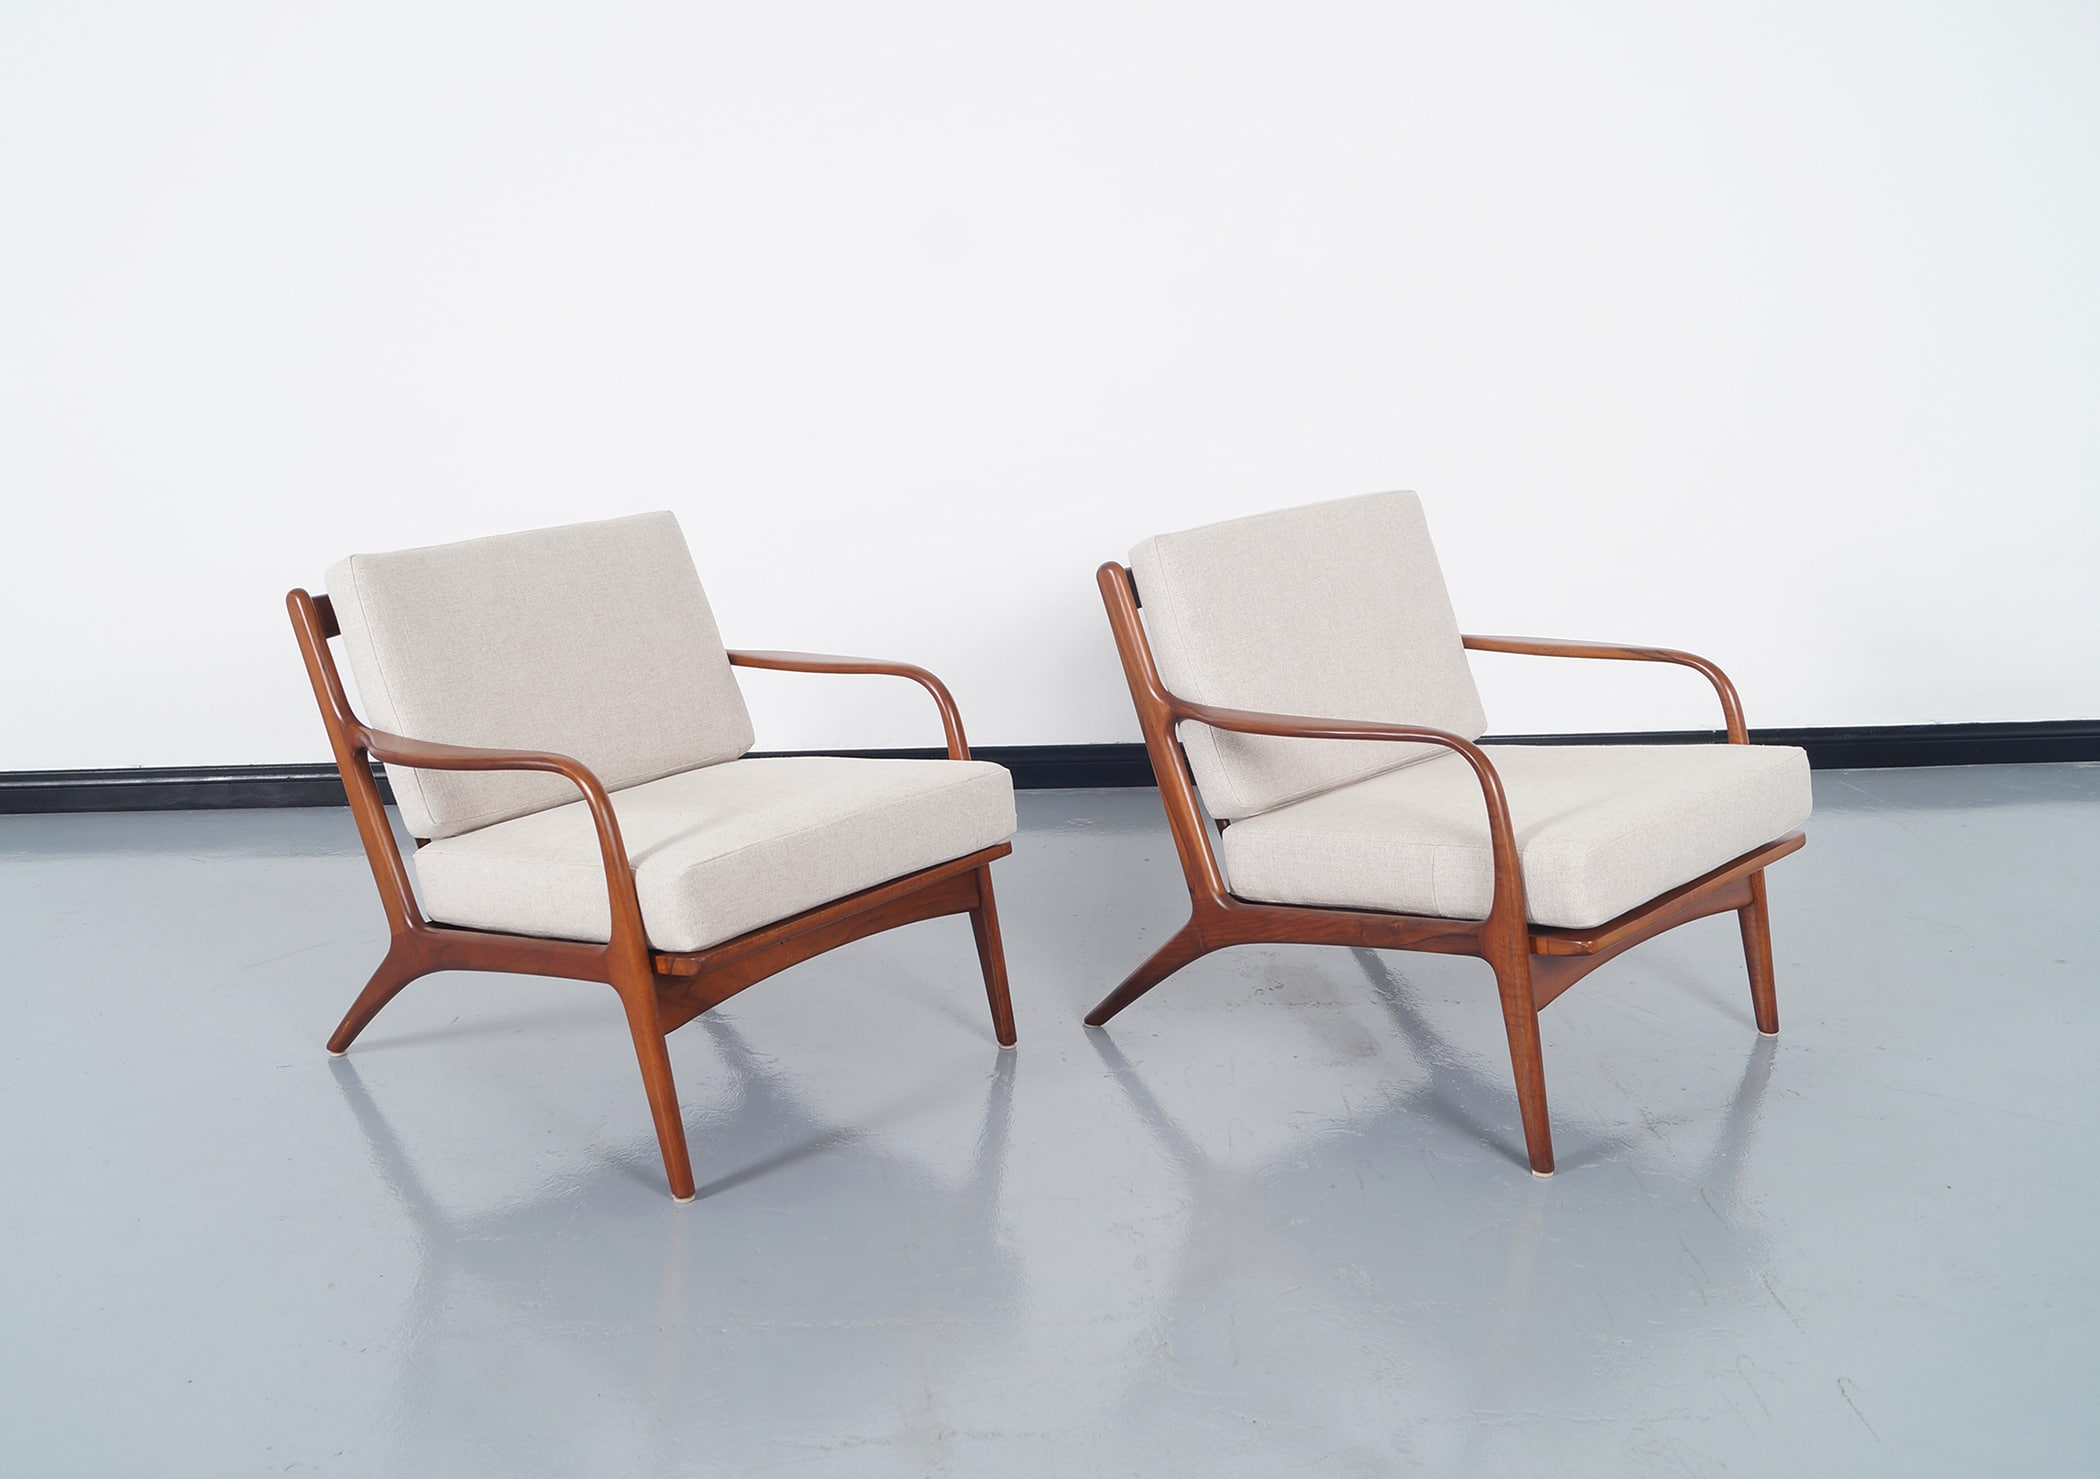 Vintage Walnut Lounge Chairs by Adrian Pearsall for Craft Associates